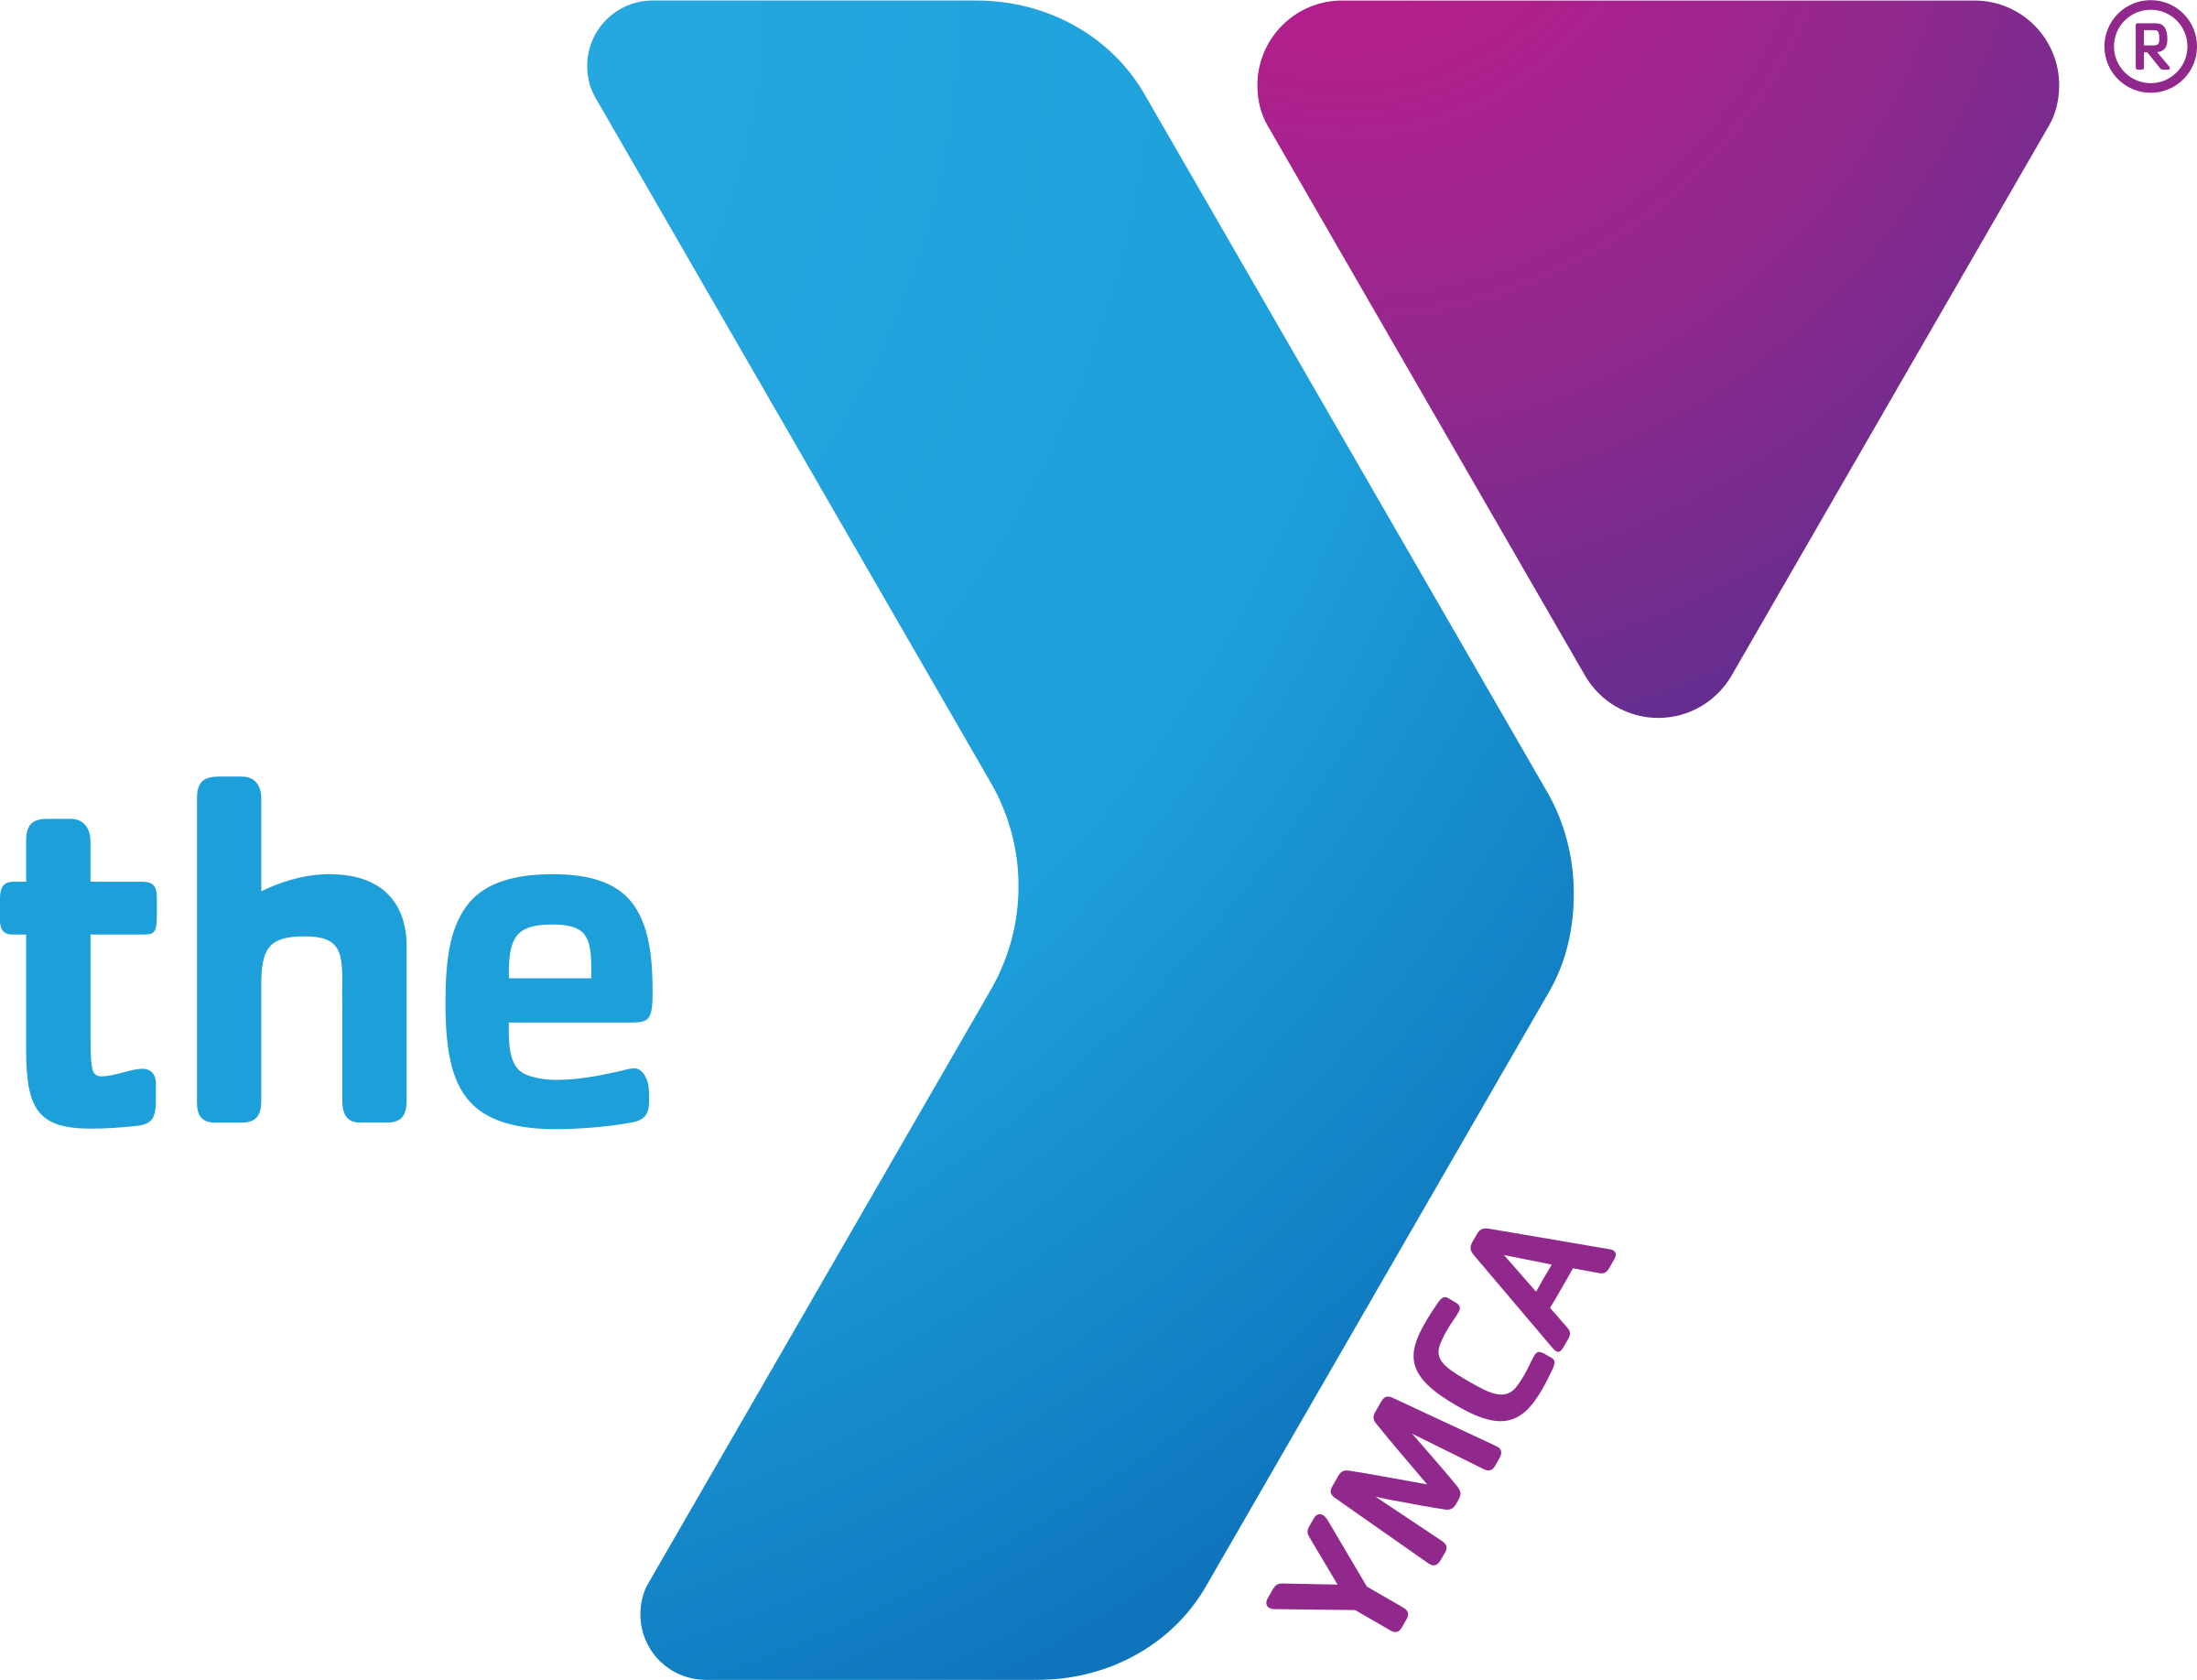 ymca-3-logo-png-transparent